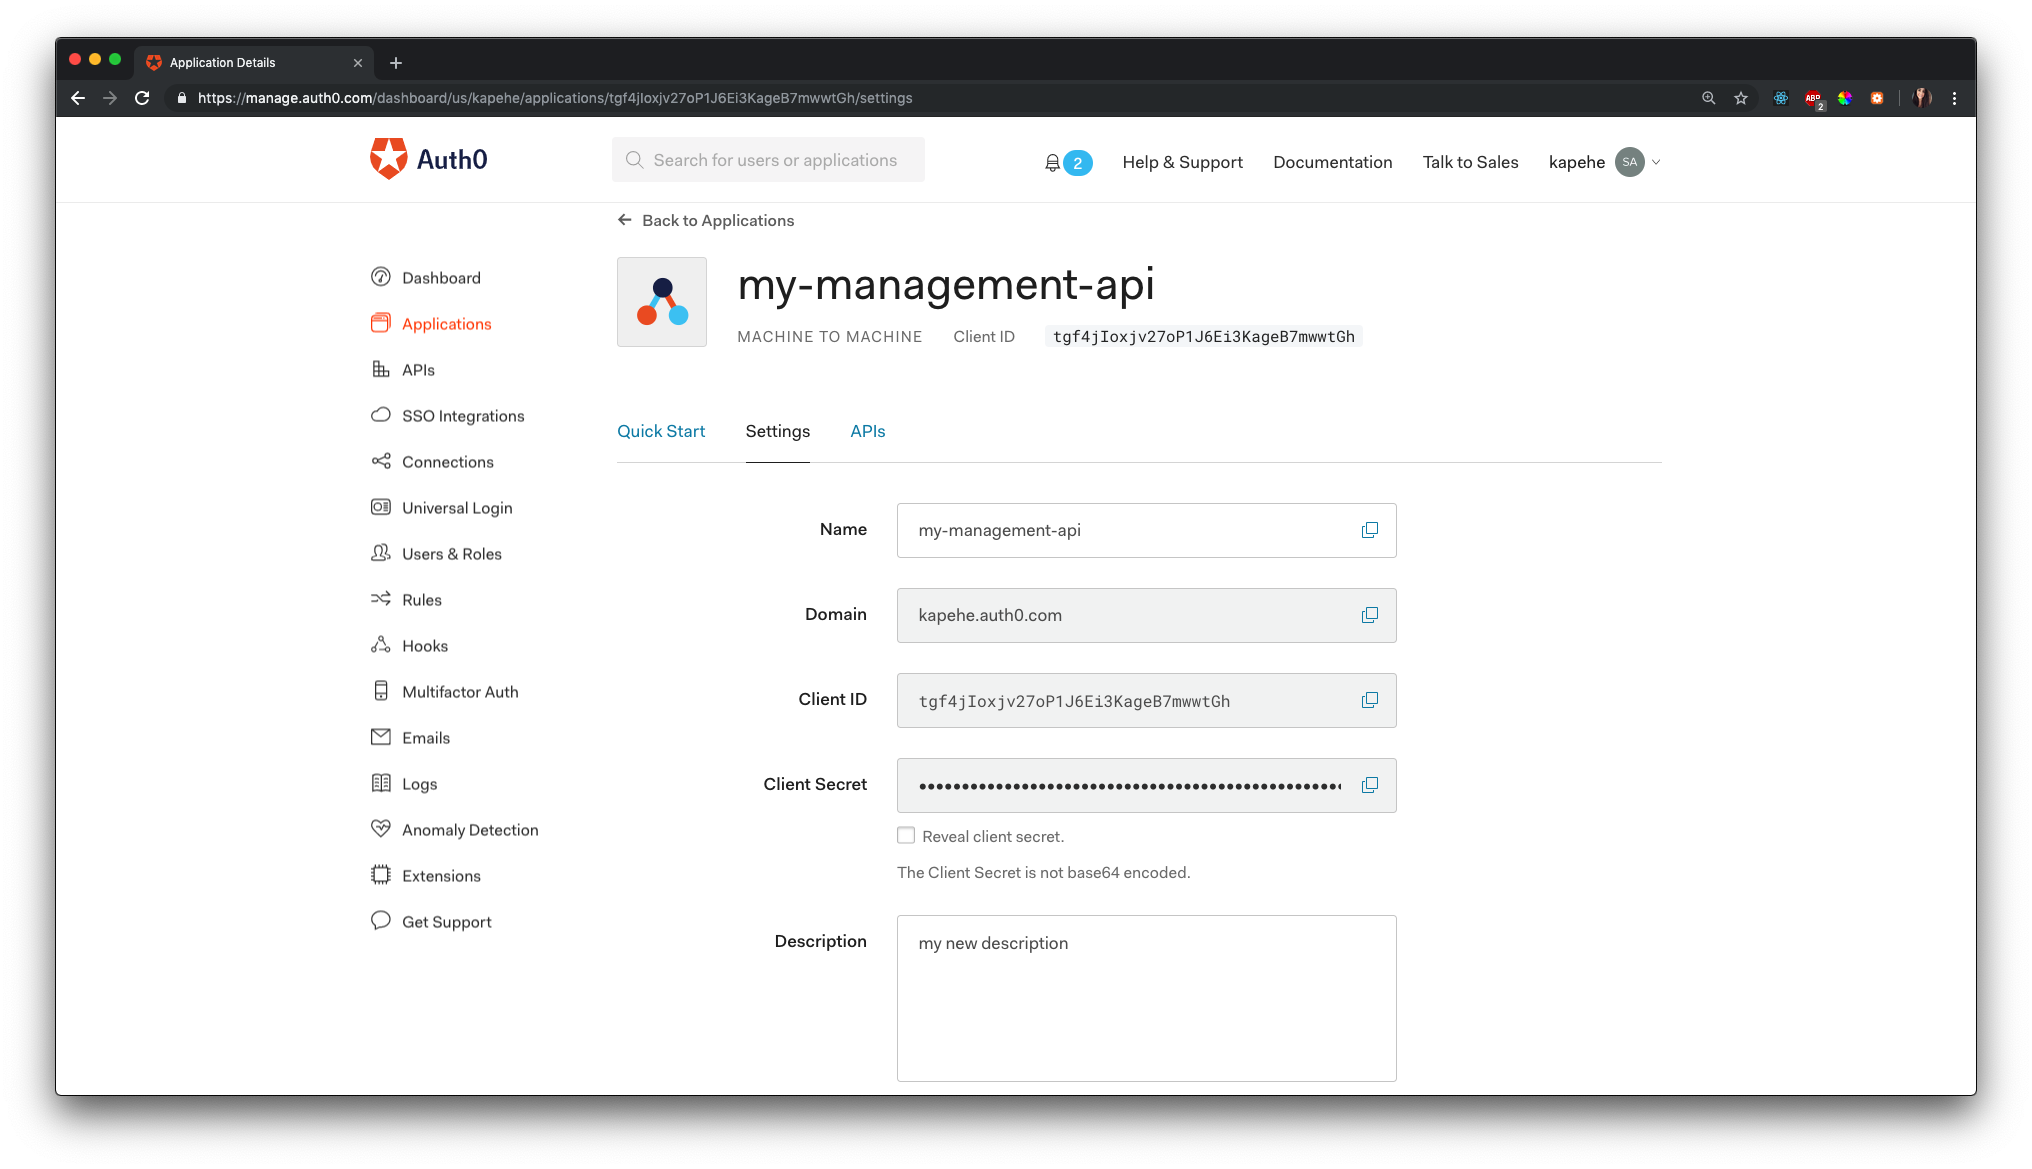 Auth0 application view with updated name and description